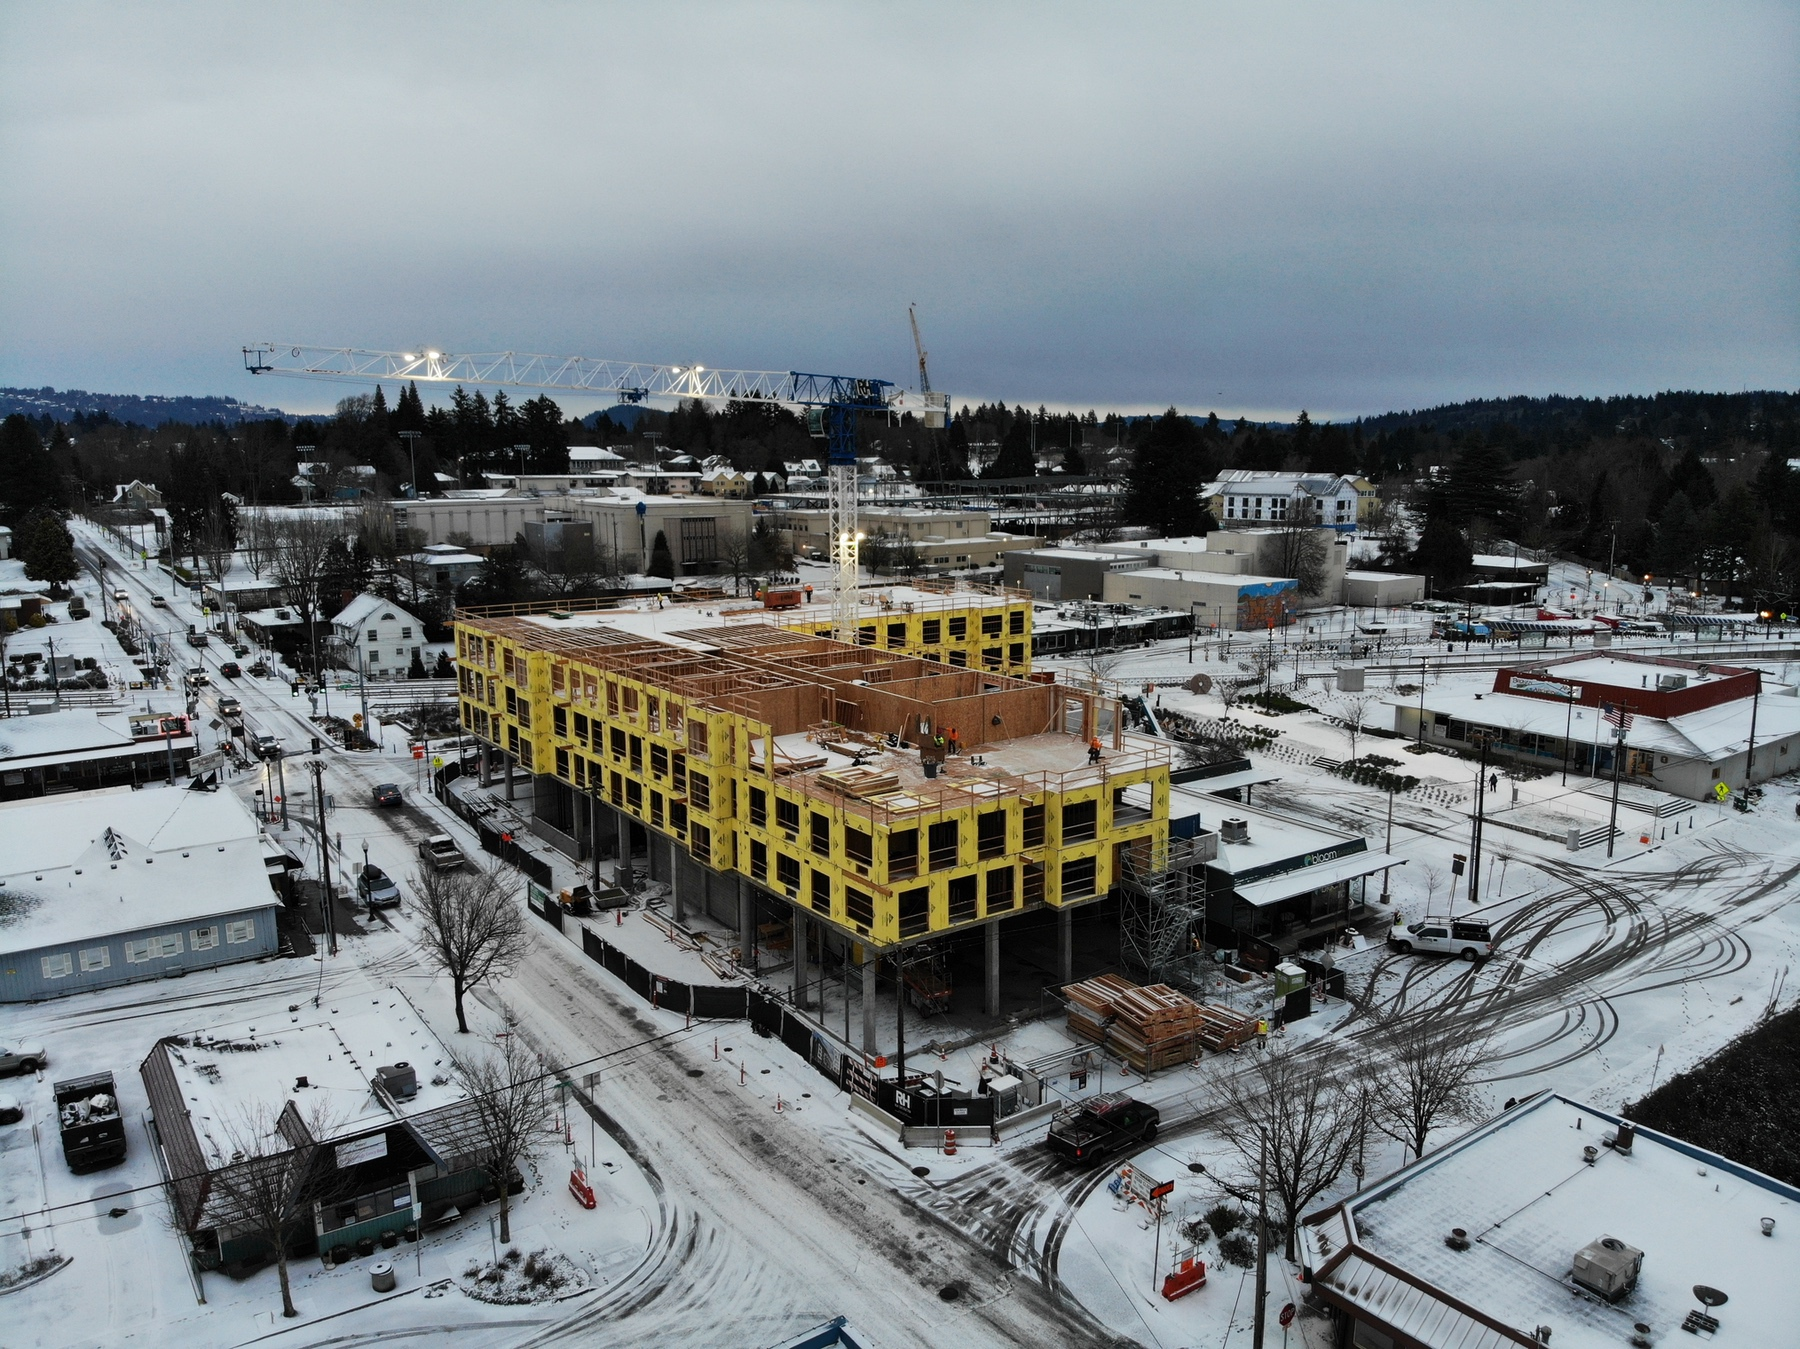 Axletree Apartments: Multifamily Housing built by R&H Construction jobsite in snow drone view